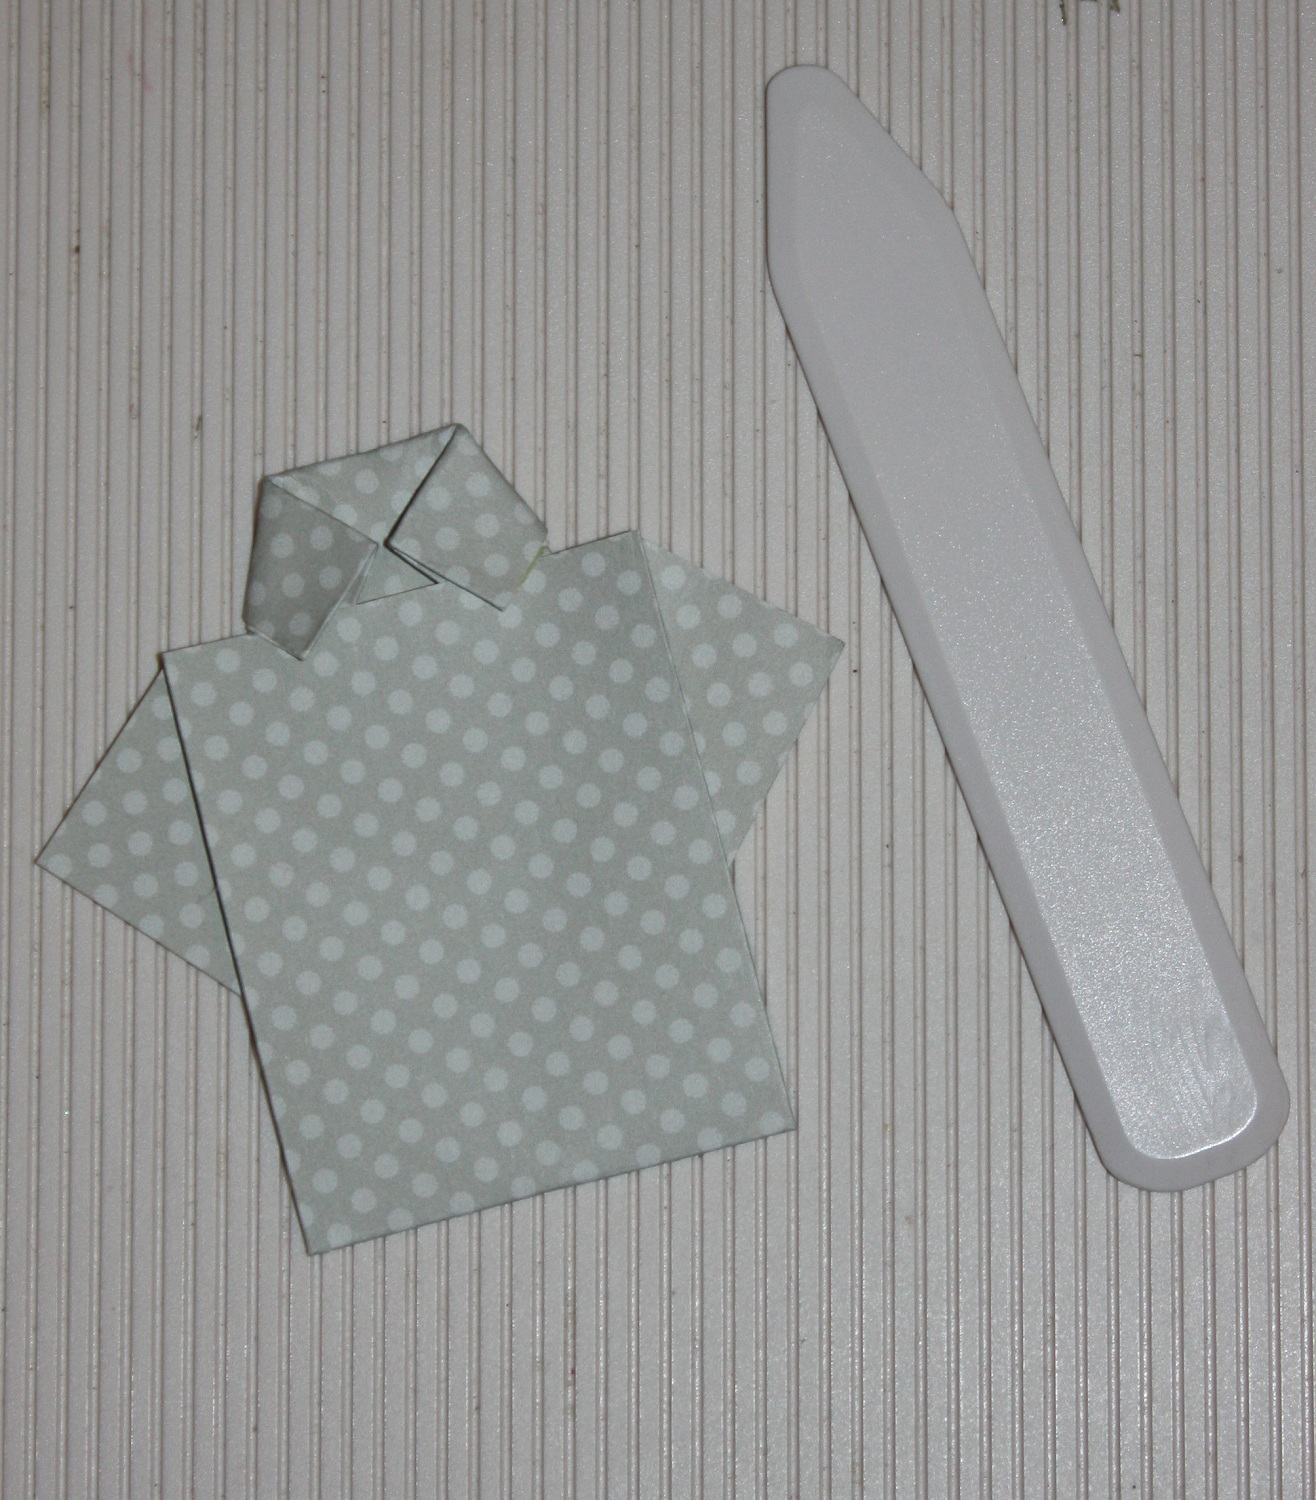 Papers Pads and Pictures: A Paper Folded Man's Shirt